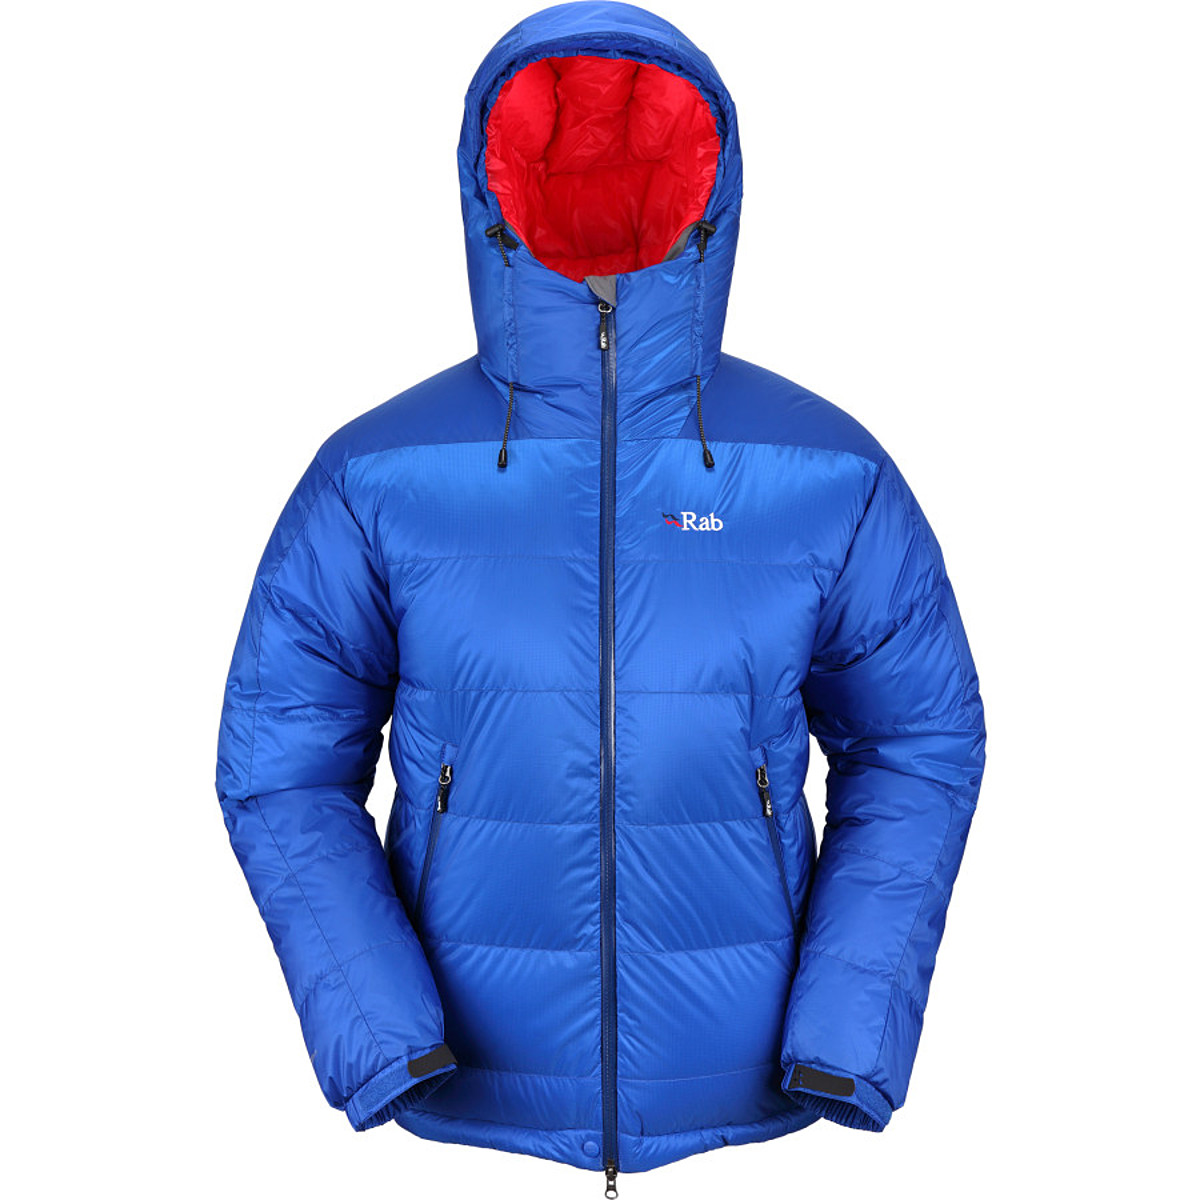 Rab Neutrino Plus Jacket